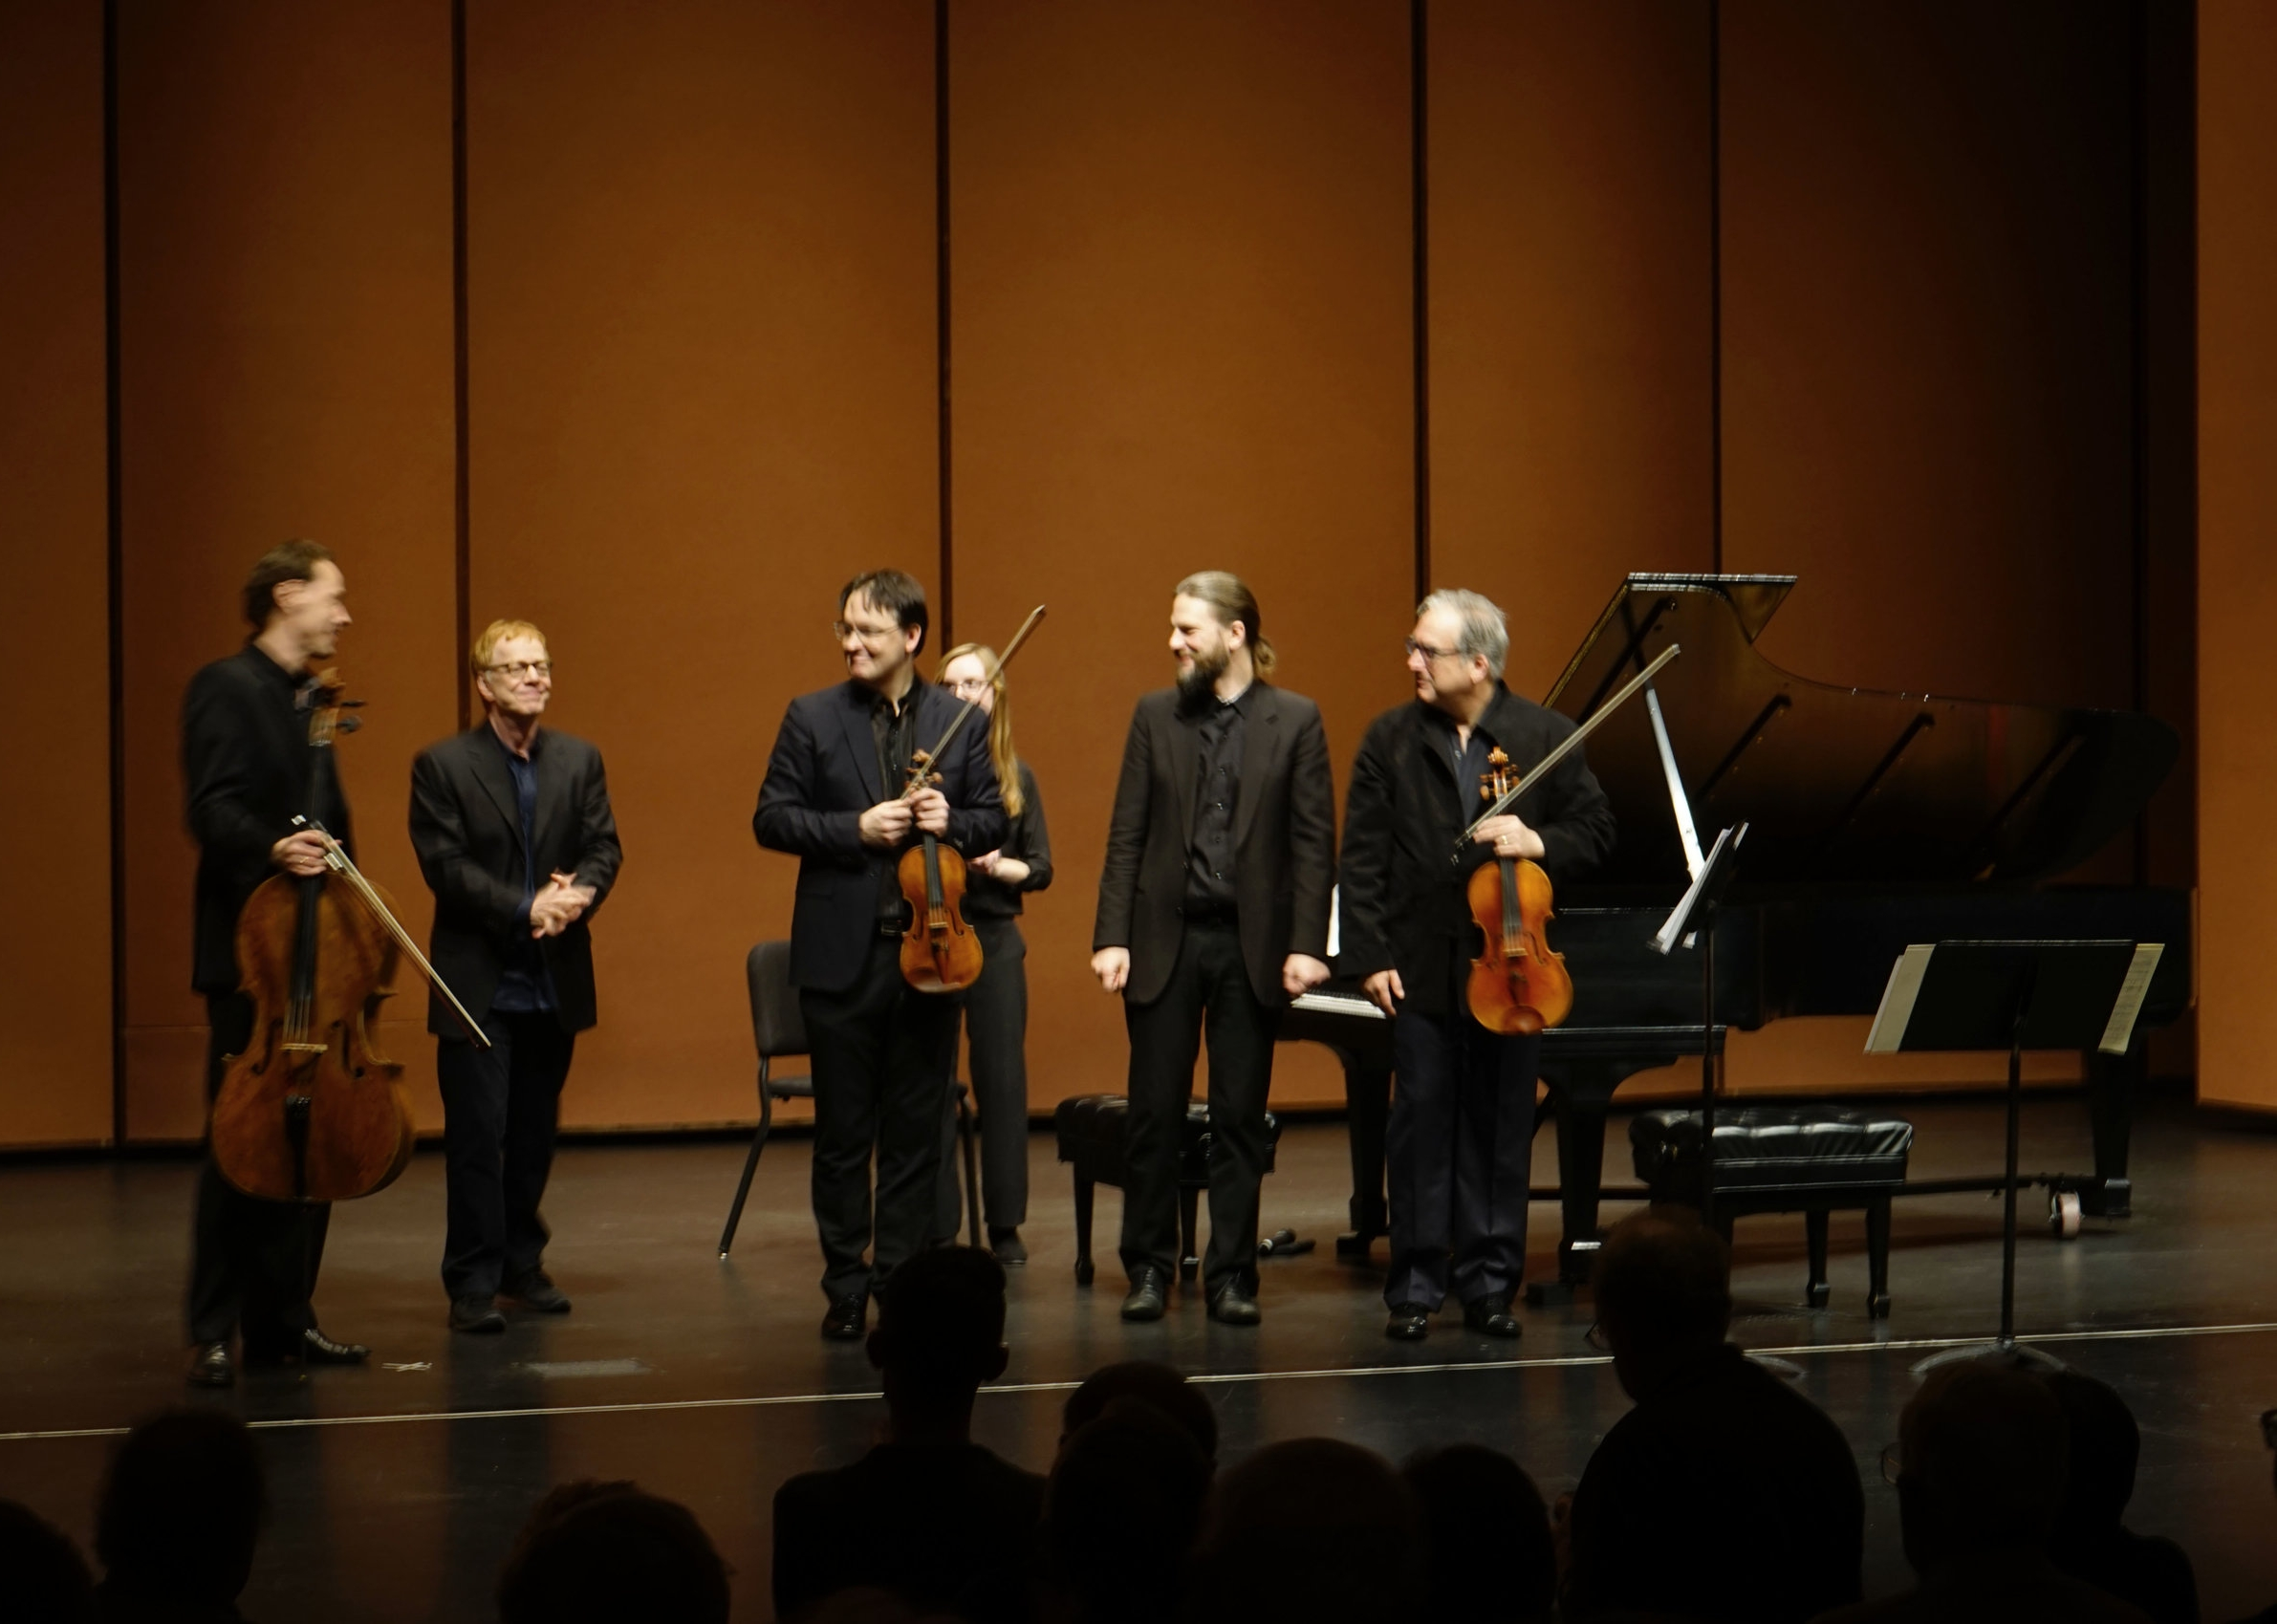 PIANO QUARTET - Co-commissioned by the Lied Center of Performing Arts University of Nebraska in Lincoln and The Philharmonic Piano Quartet Berlin. On February 6, 2018, the Philharmonic Piano Quartet Berlin commenced their US World Premiere tour of Elfman's new work.